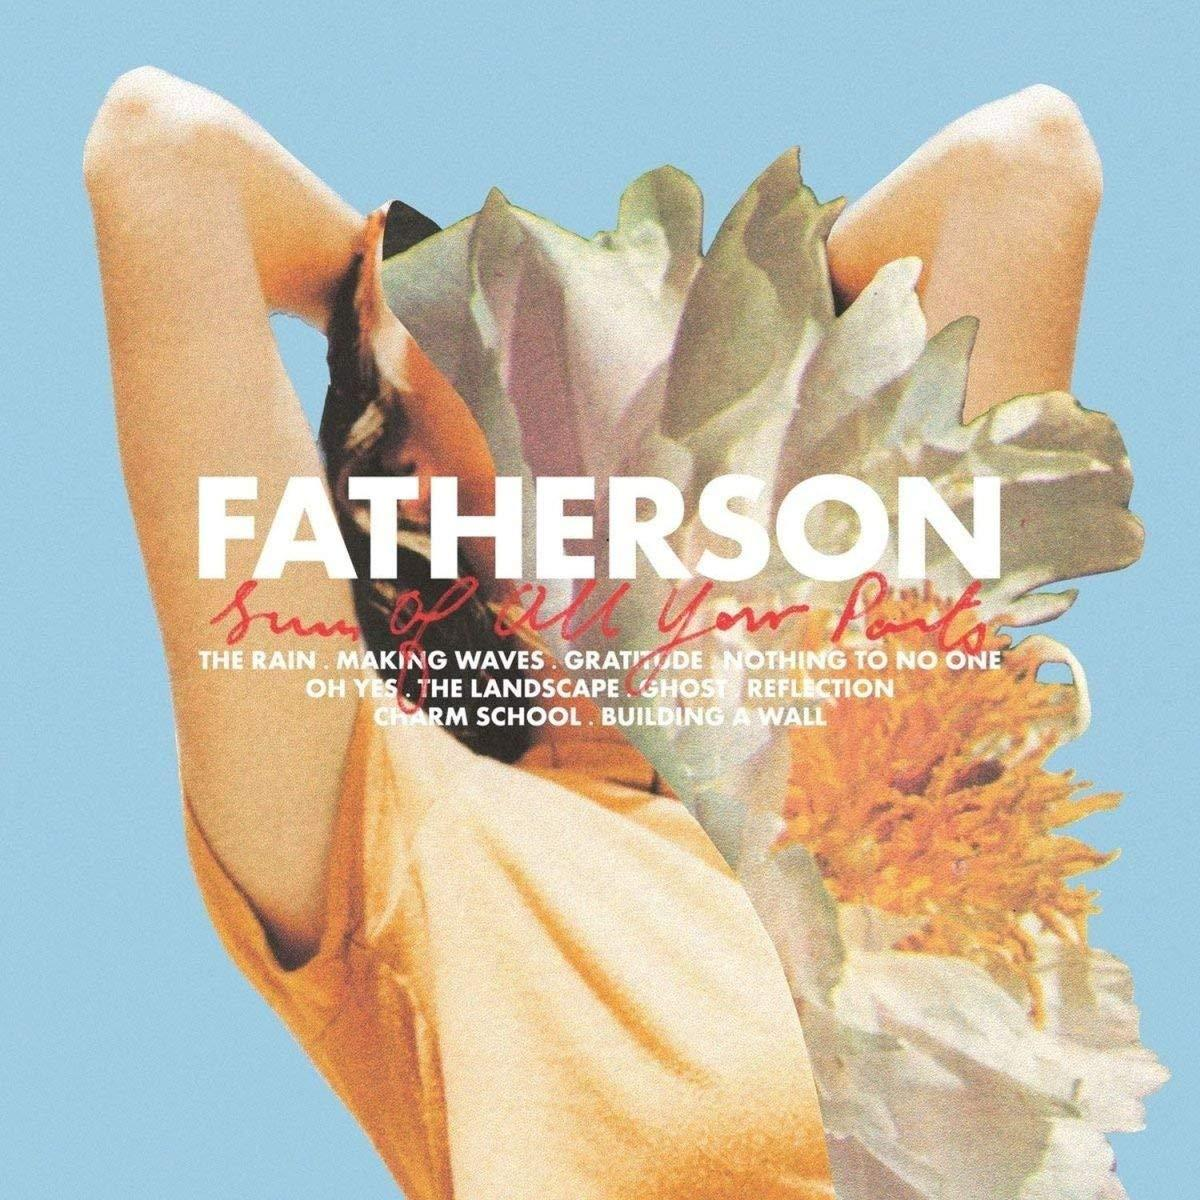 Fatherson's 'Sum Of All Your Parts' is a gutsy and assured third album